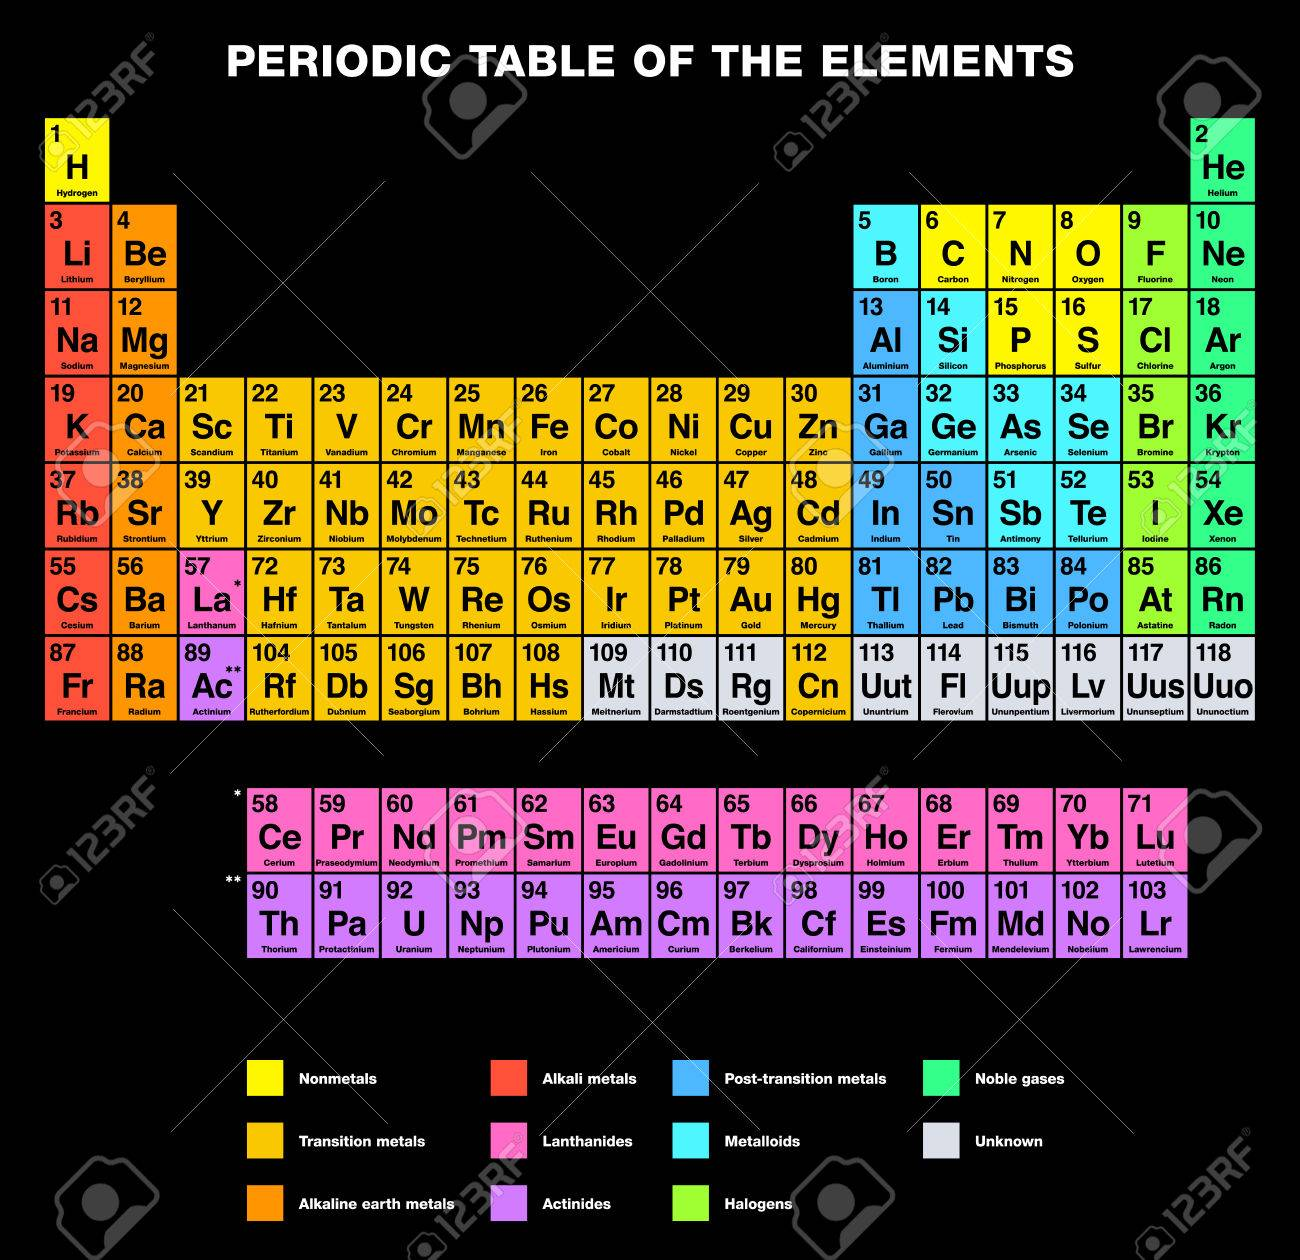 56 element periodic table image collections periodic table images 56 element periodic table images periodic table images 56 element periodic table image collections periodic table gamestrikefo Image collections